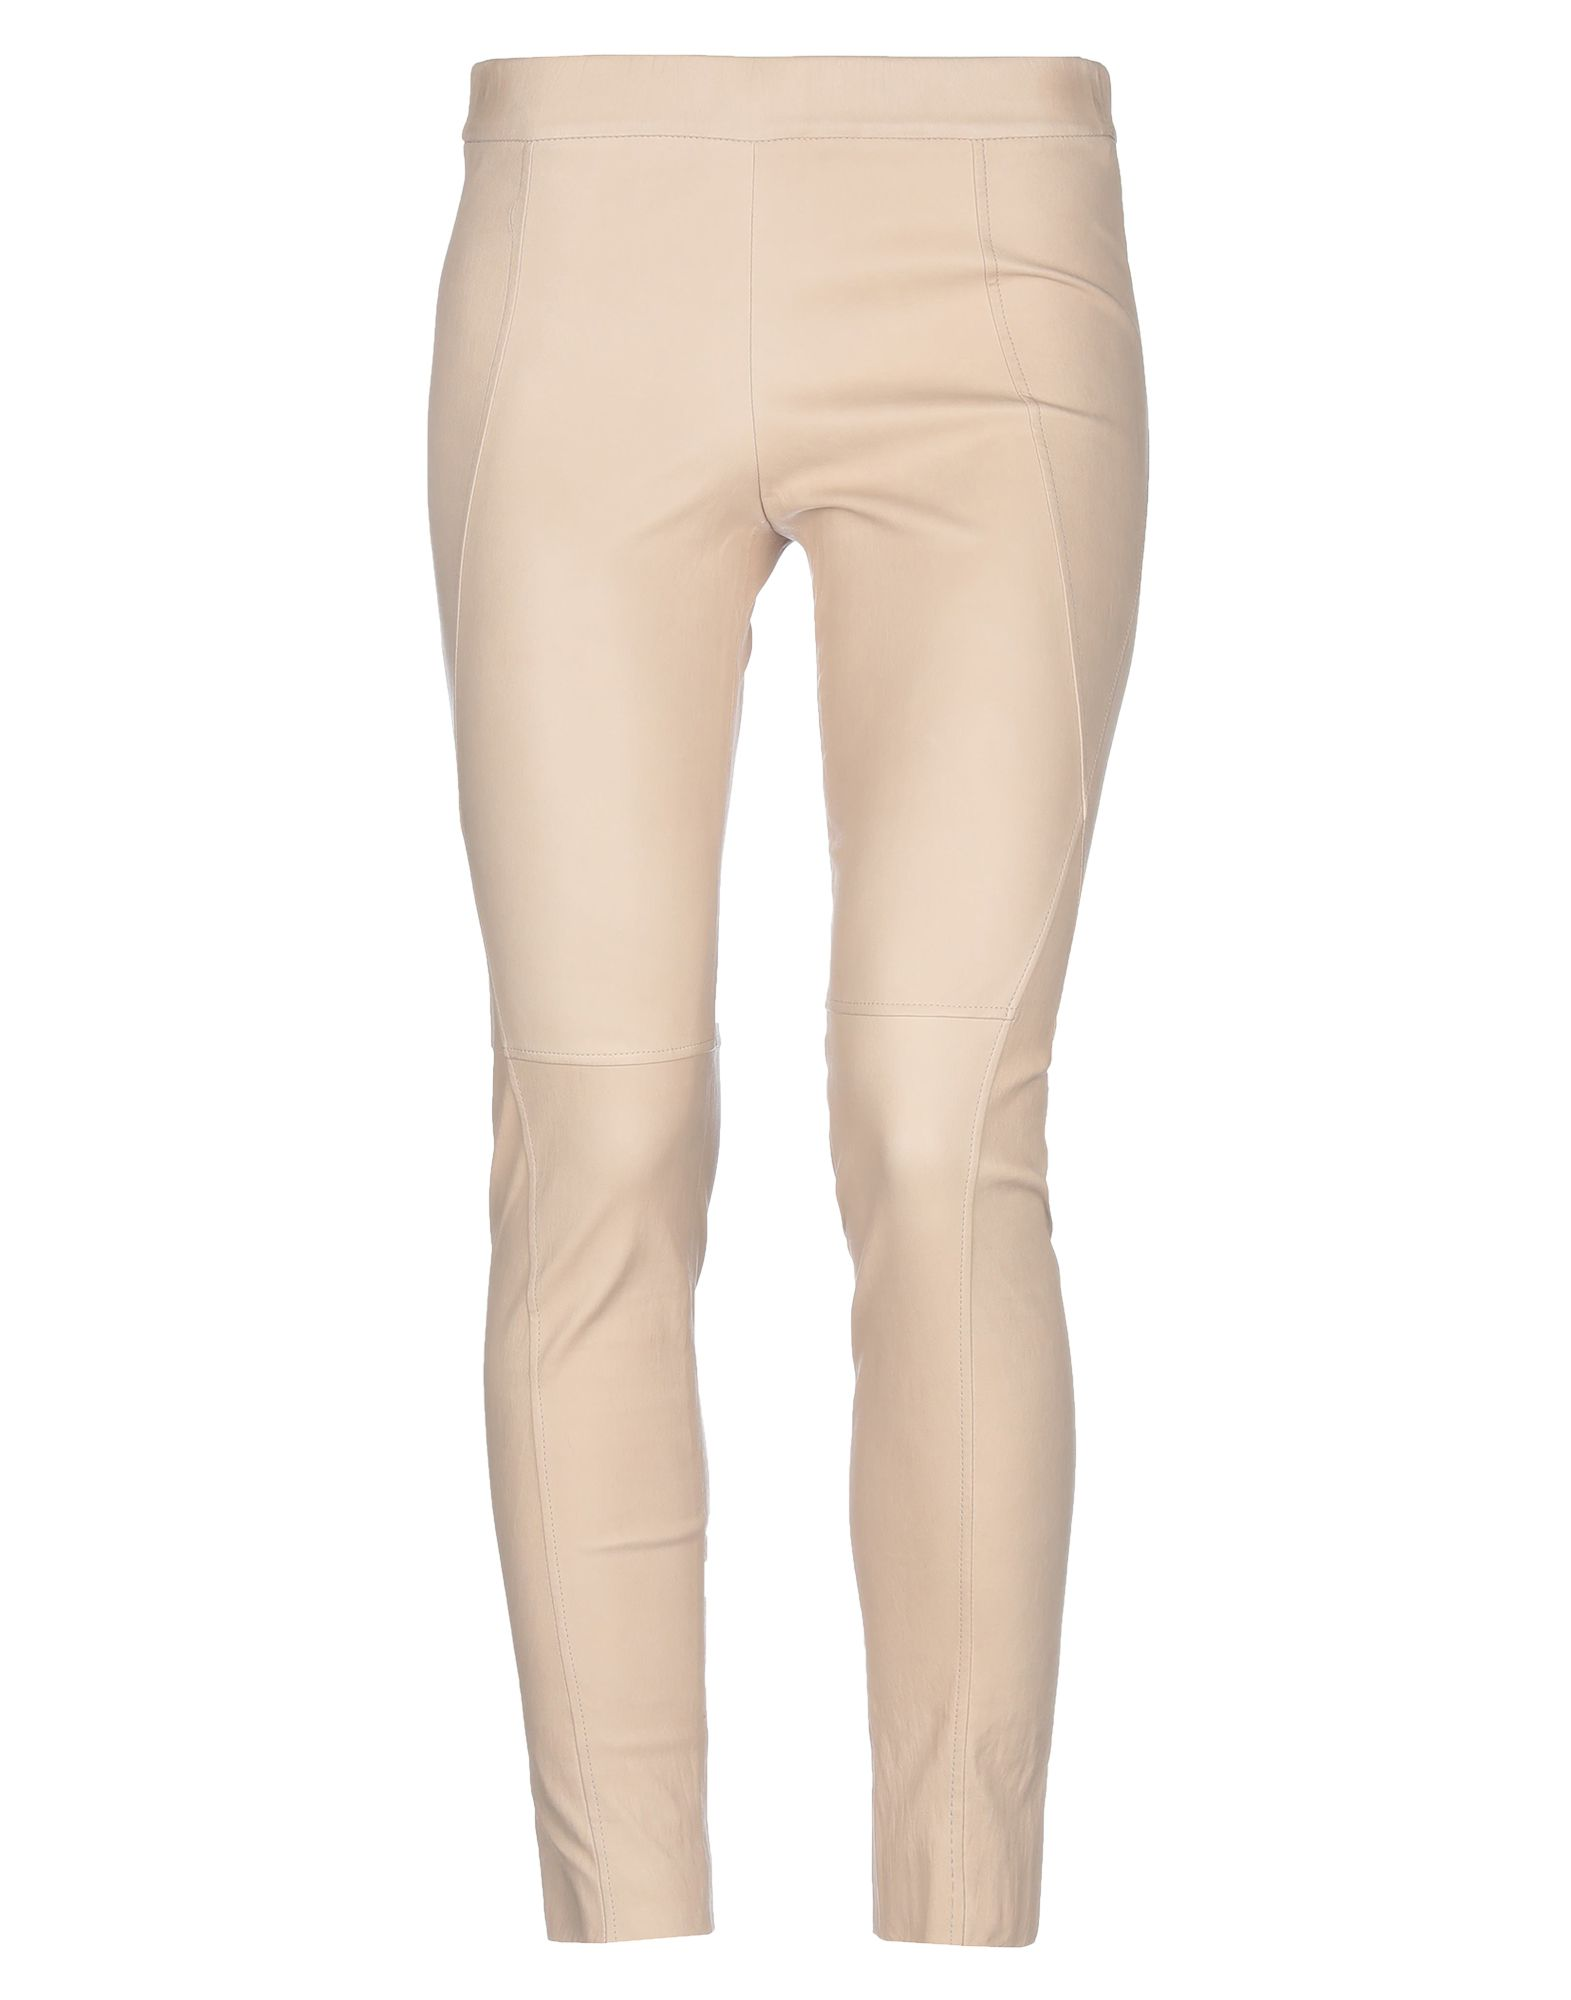 BRUNELLO CUCINELLI Leggings. leather, basic solid color, stitching, mid rise, slim fit, tapered leg, no pockets, contains non-textile parts of animal origin. Soft Leather